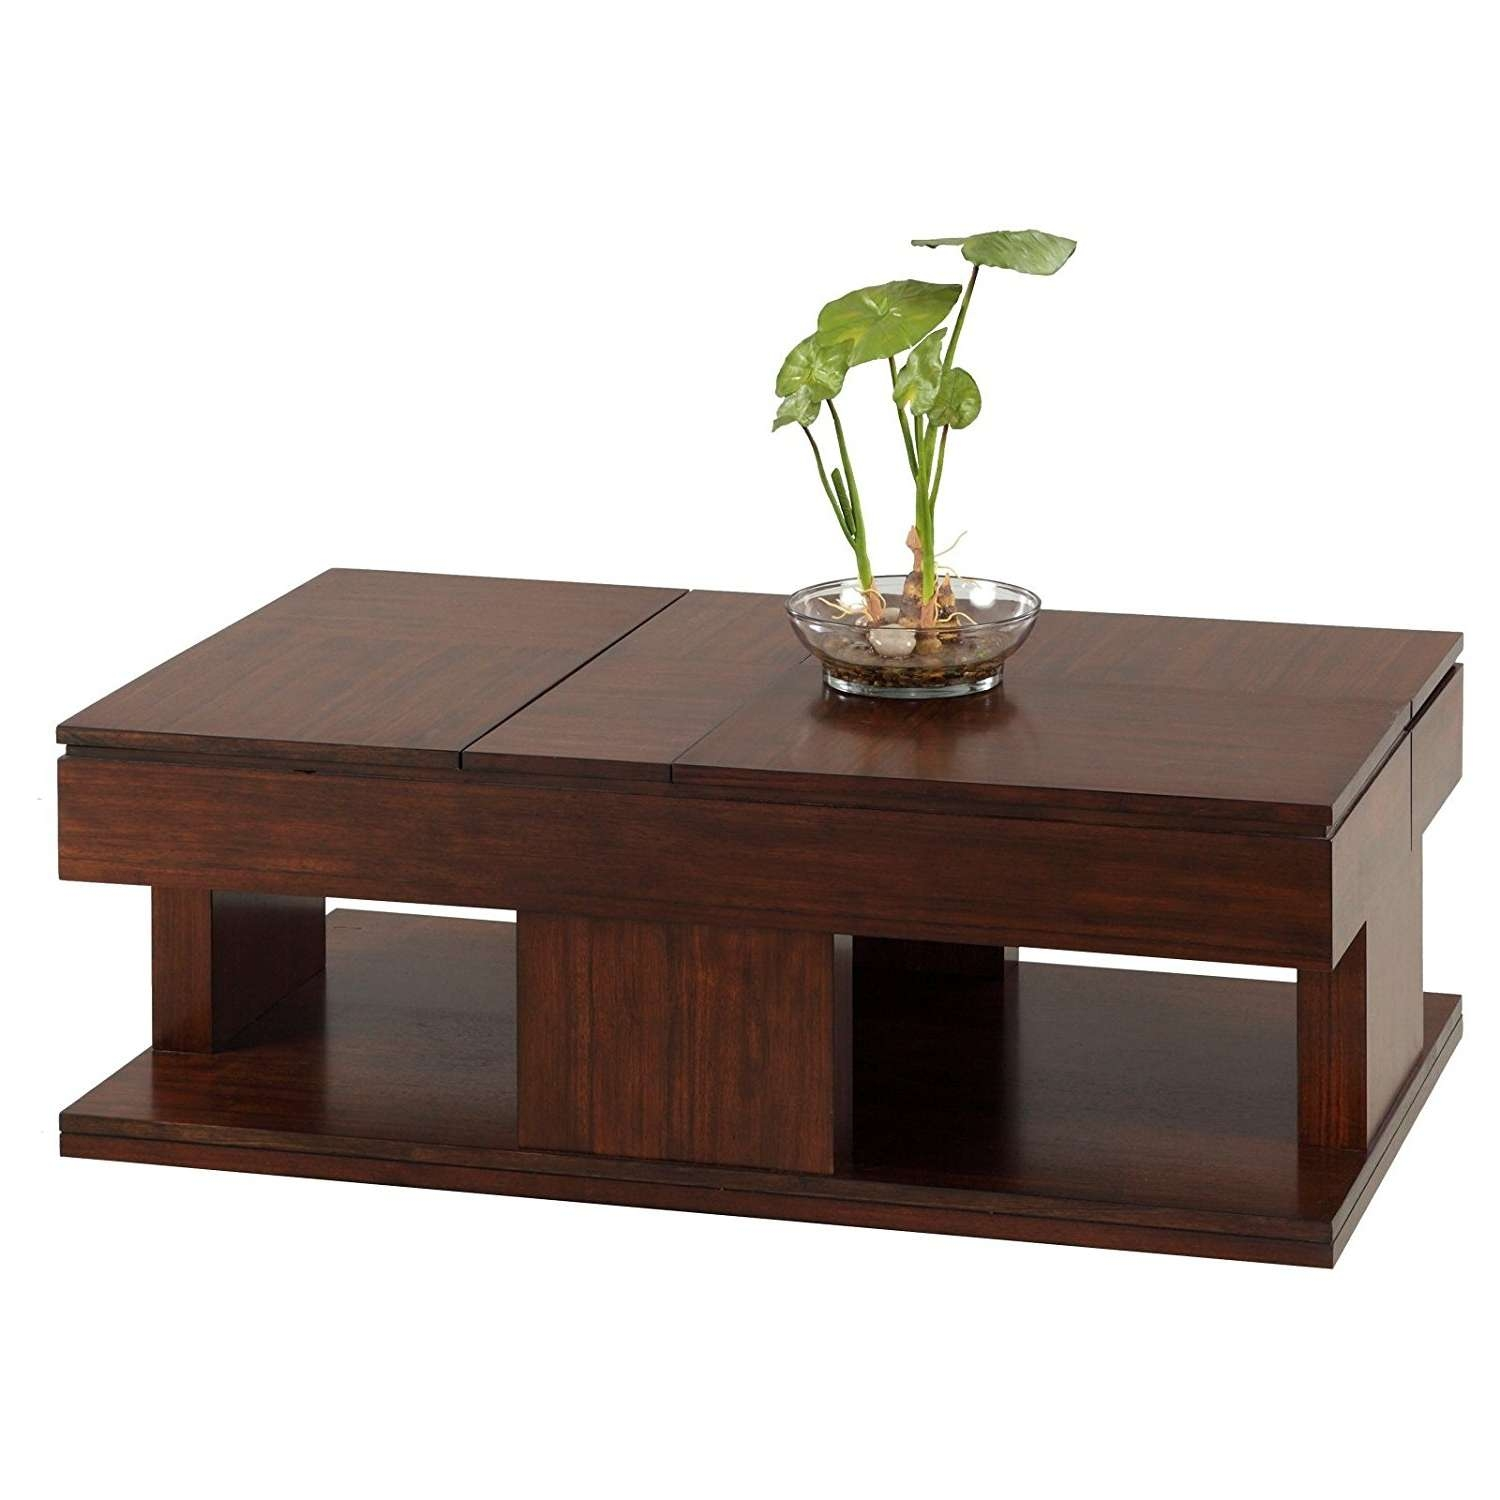 Collection Waverly Lift Top Coffee Table – Mediasupload Intended For Preferred Waverly Lift Top Coffee Tables (View 2 of 20)